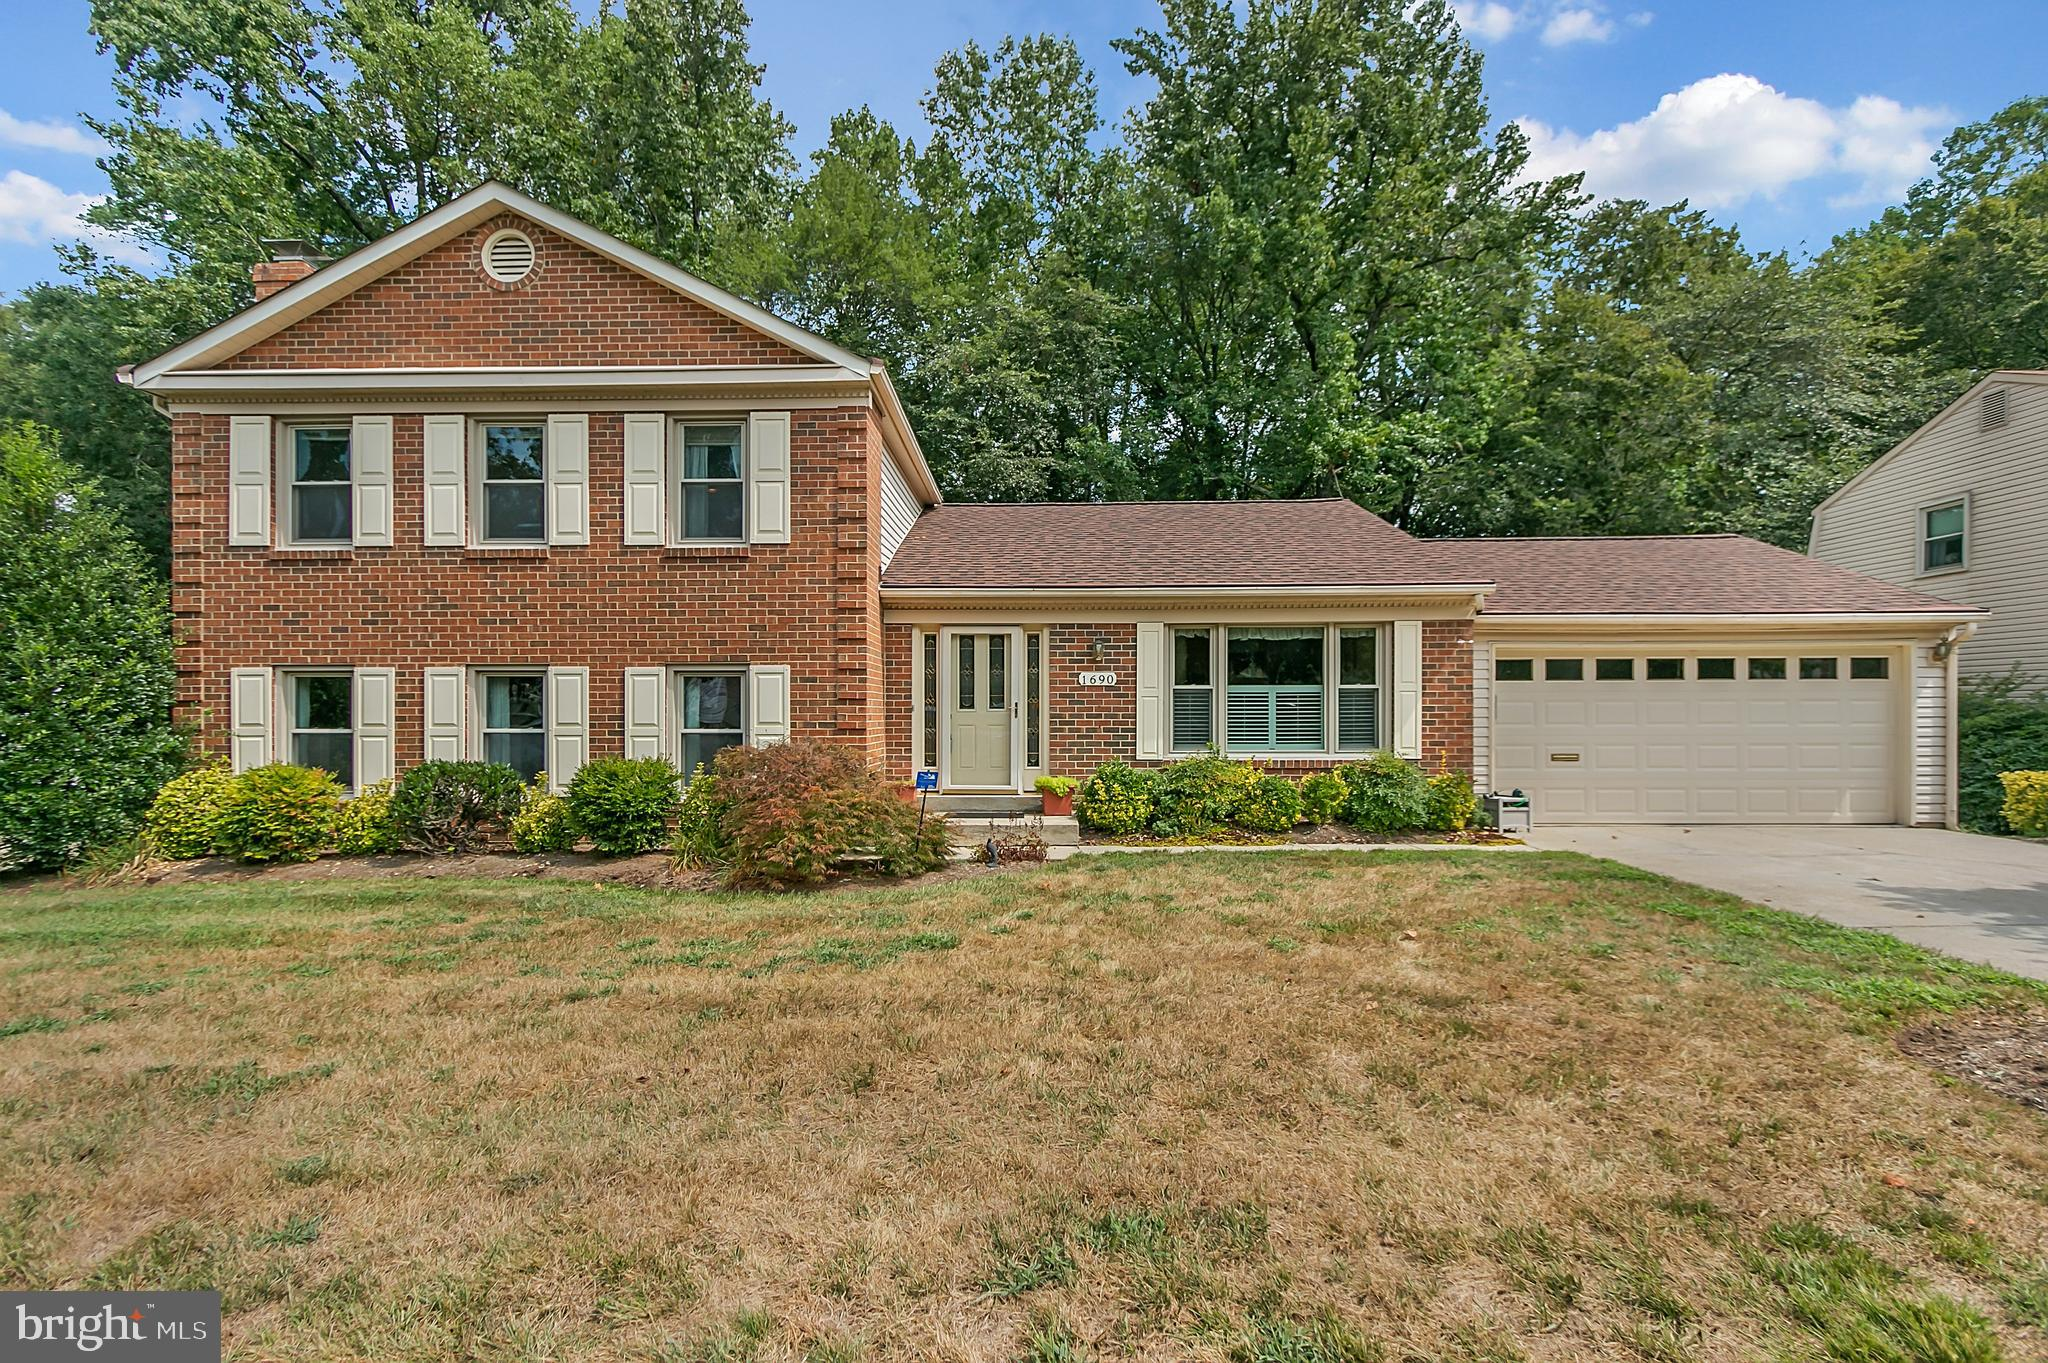 1690 BARRISTER COURT, CROFTON, MD 21114